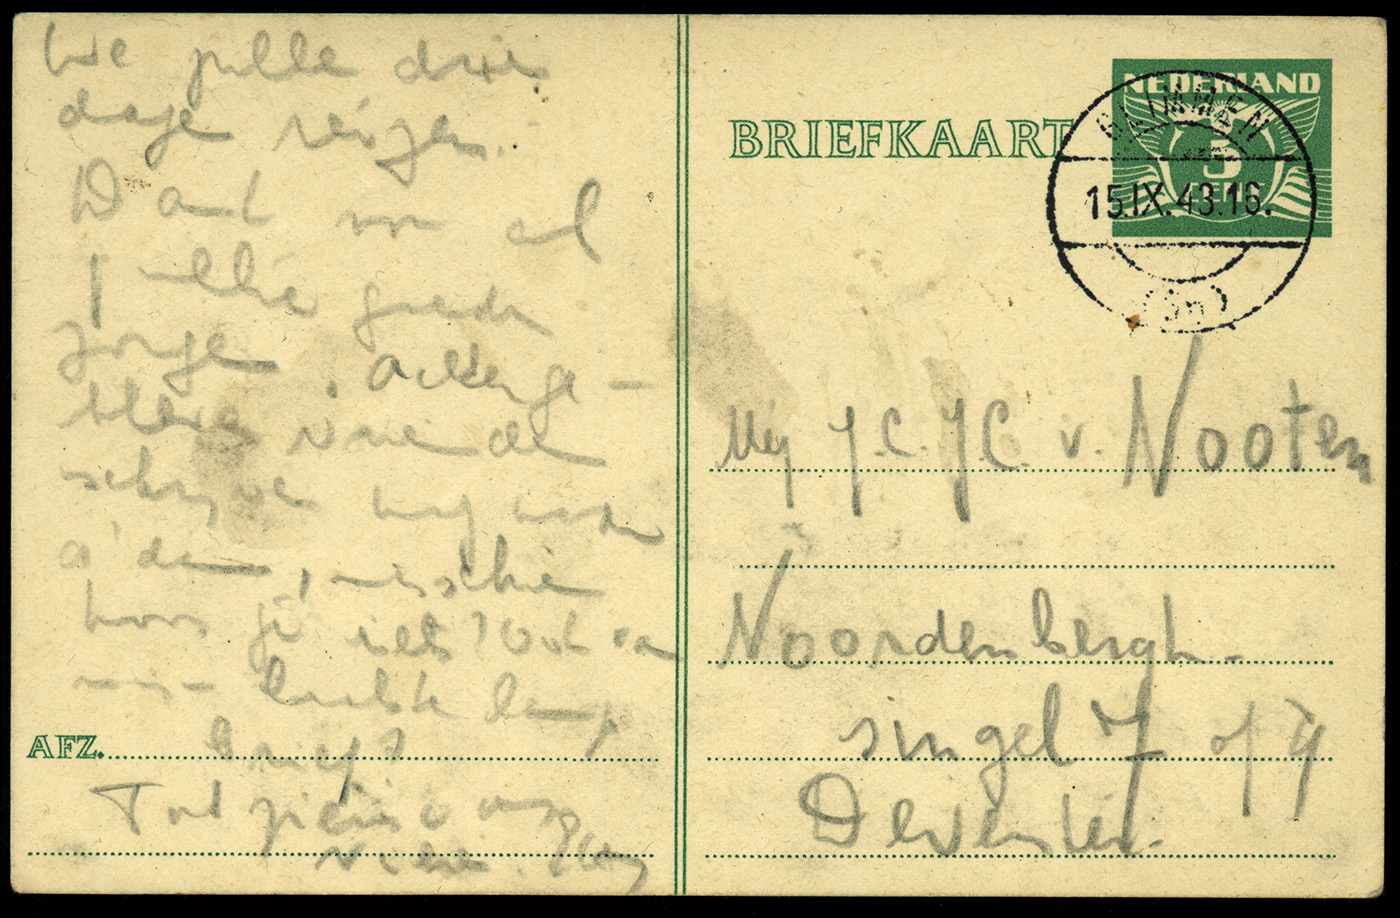 Postcard sent by Etty Hillesum as she left on the train to Auschwitz. Photograph from the collection at the Jewish Historical Museum, Amsterdam.